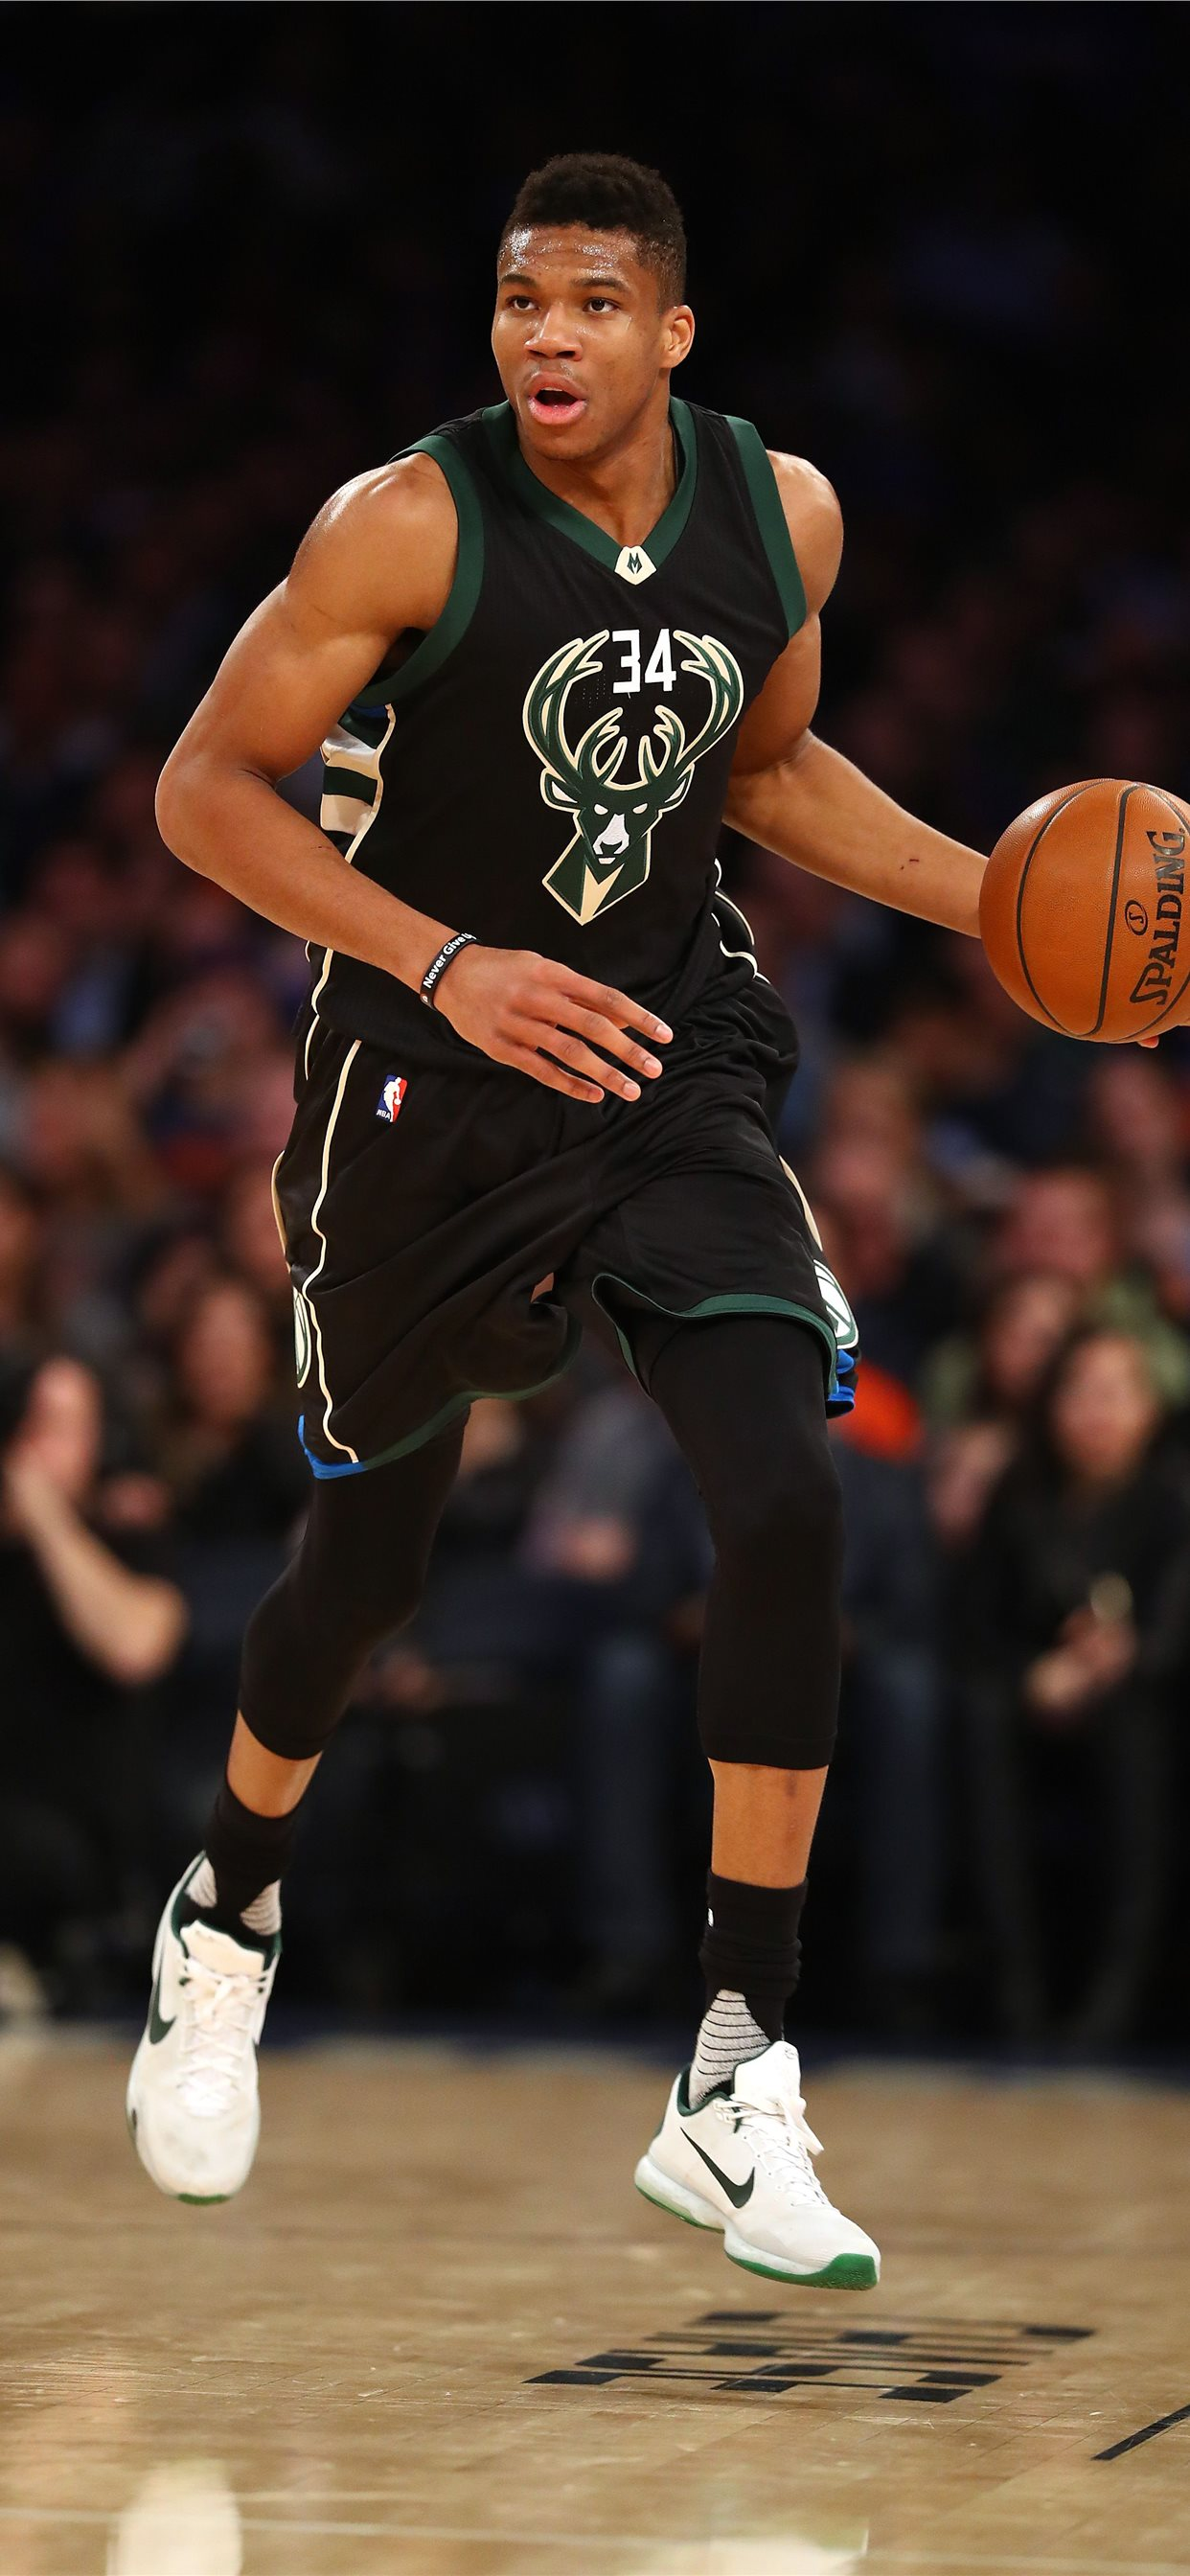 Giannis Antetokounmpo On Dog Iphone 11 Wallpapers Free Download